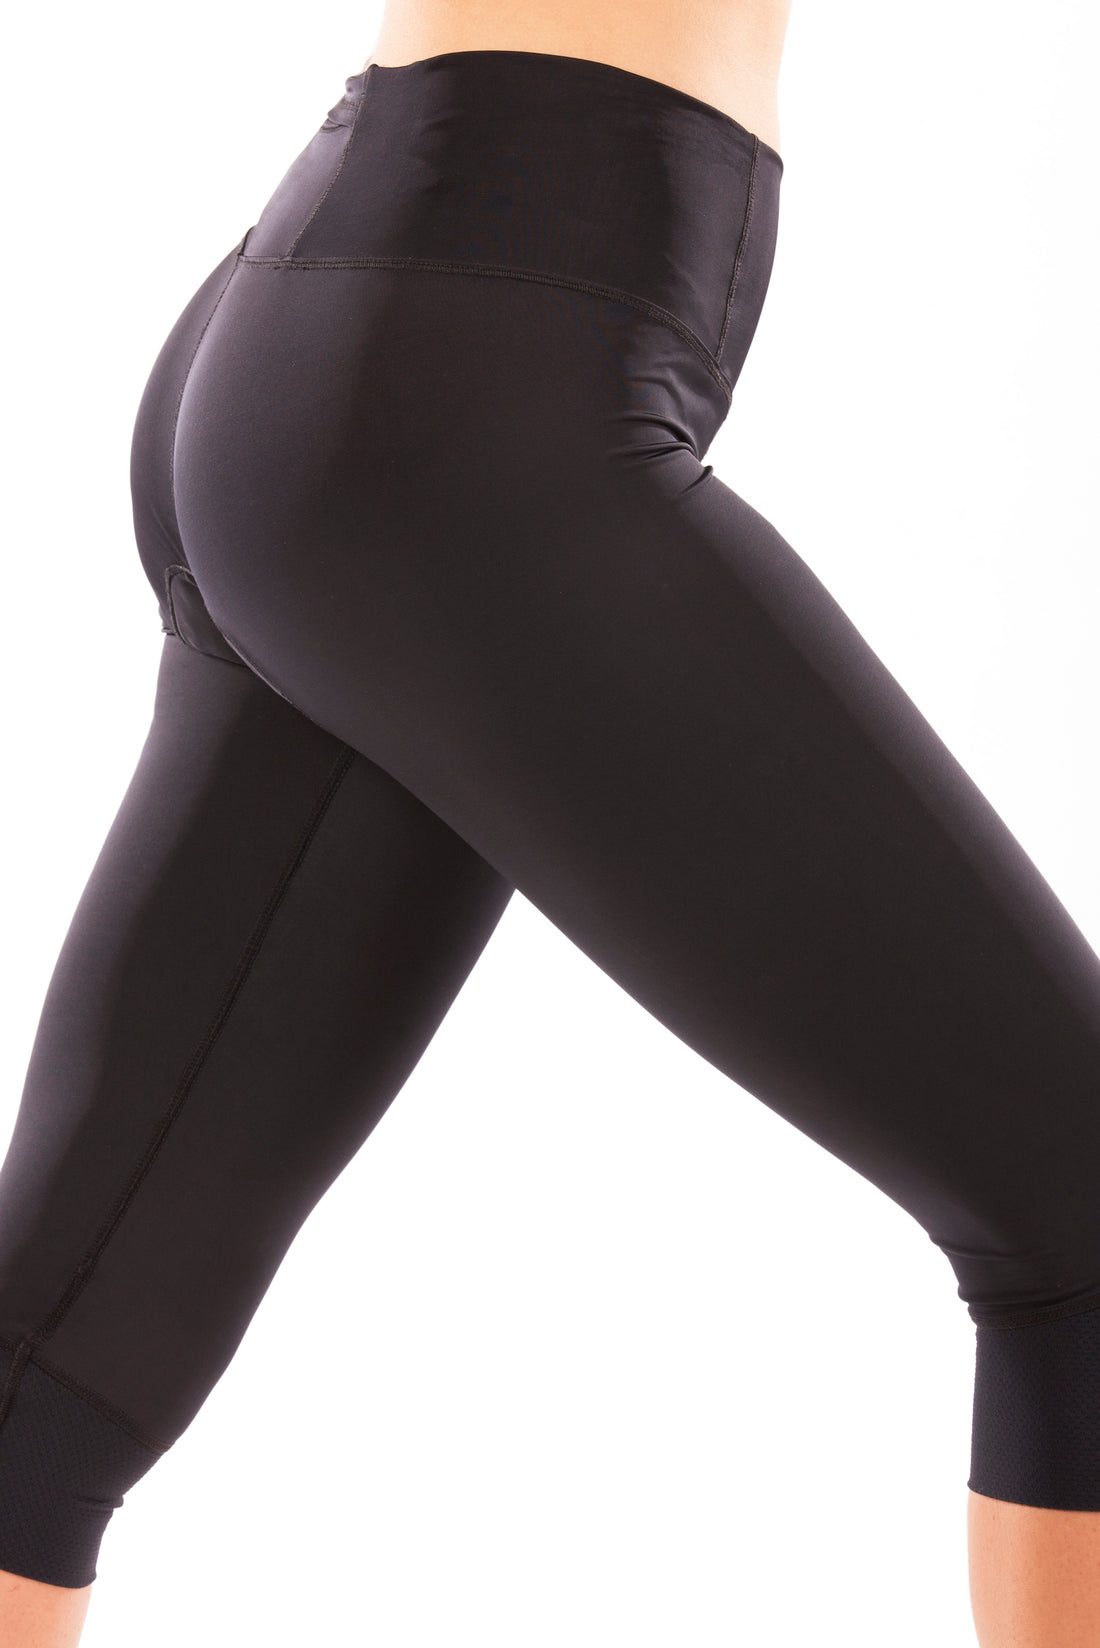 Essential Multi-Sport Tech Capri